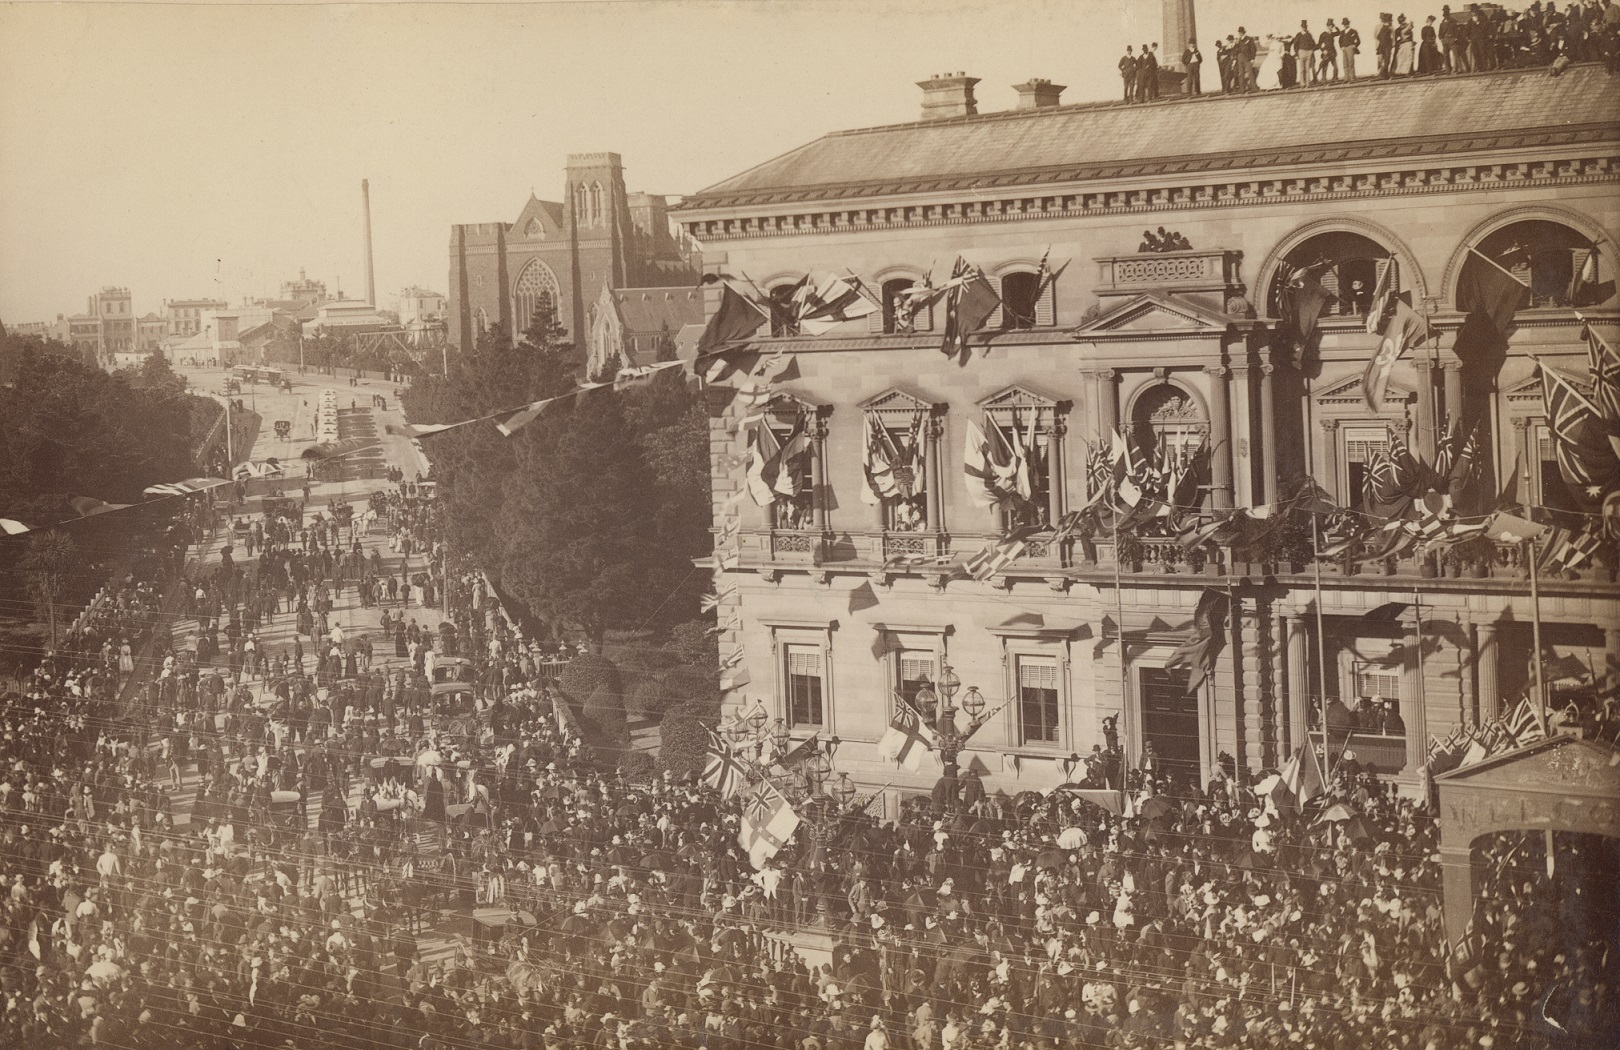 Governor Hopetoun arriving at the Old Treasury Building. The celebration drew thousands of people to the building.